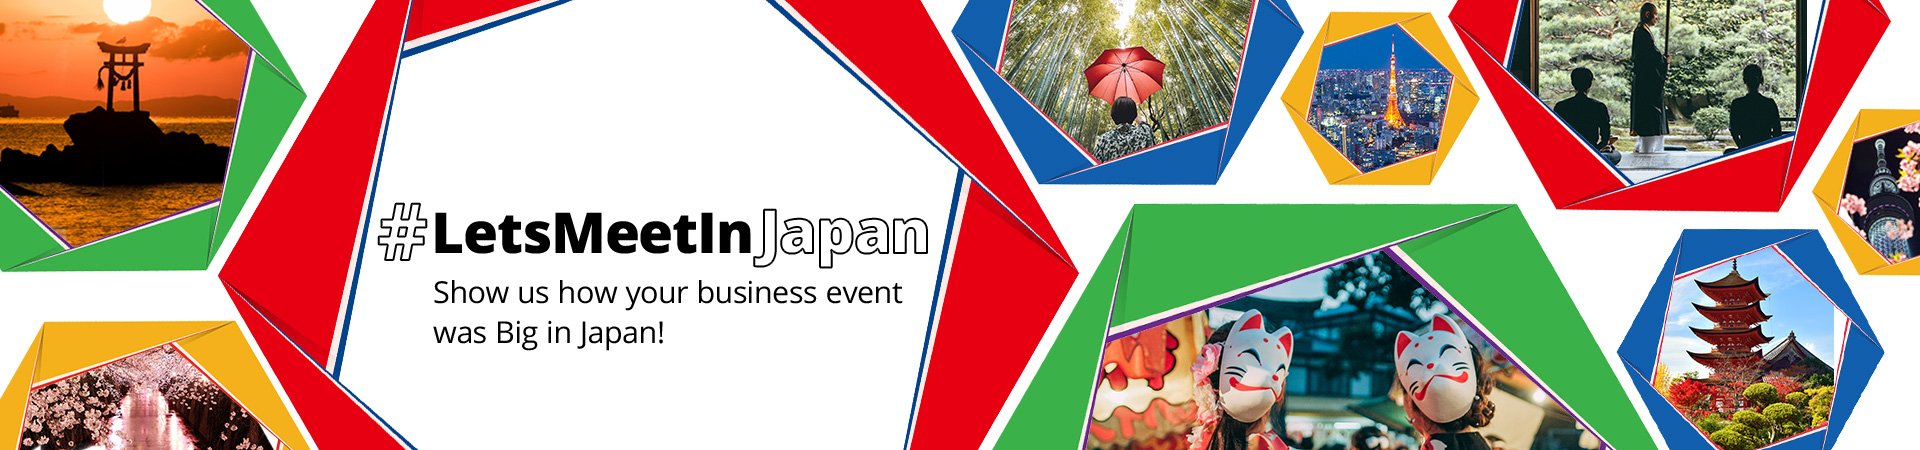 #LetsMeetInJapan Show us how your business event was Big in Japan!